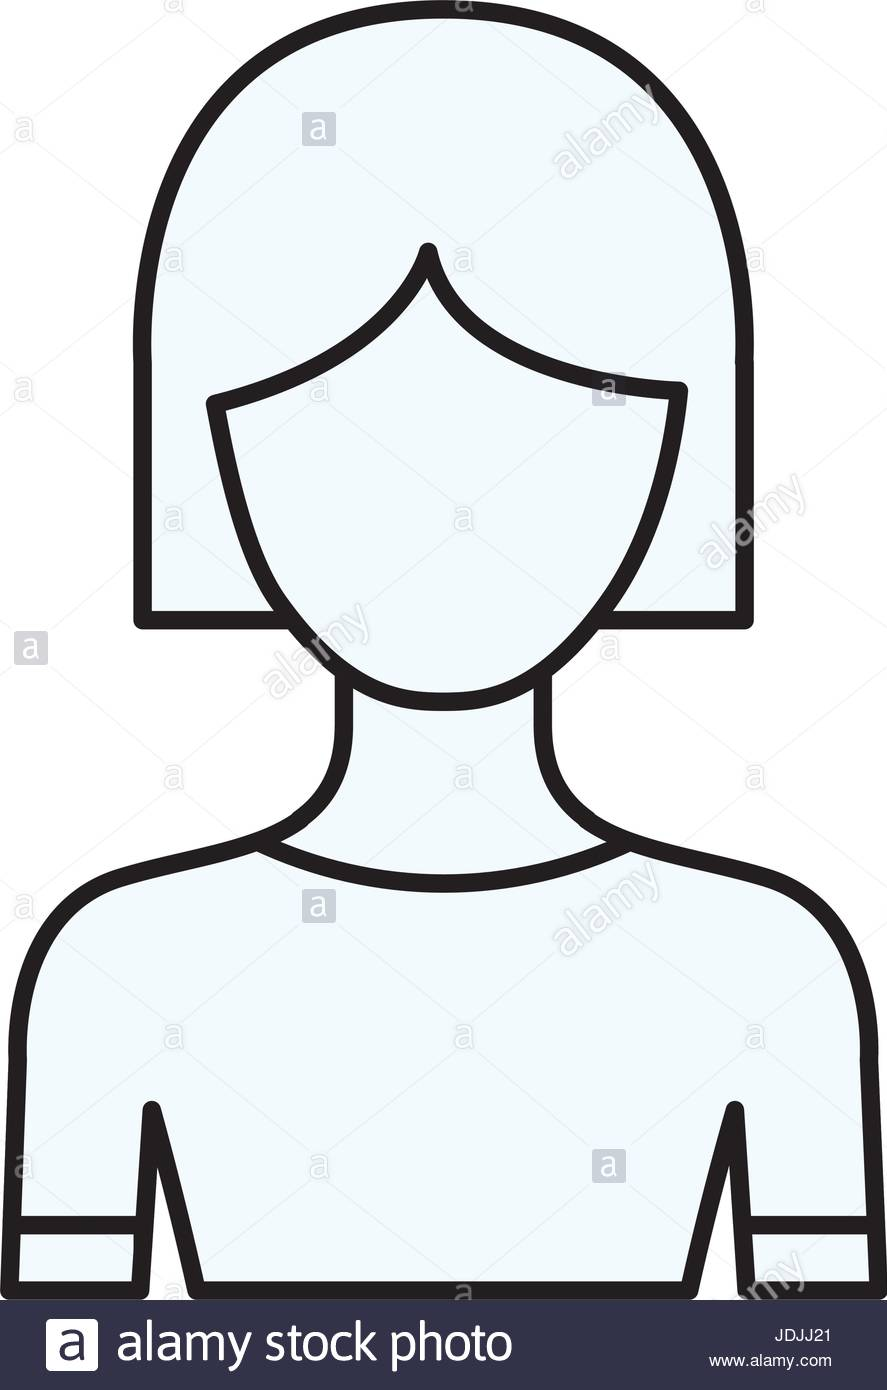 887x1390 Sketch Silhouette Of Faceless Half Body Woman With Short Hair